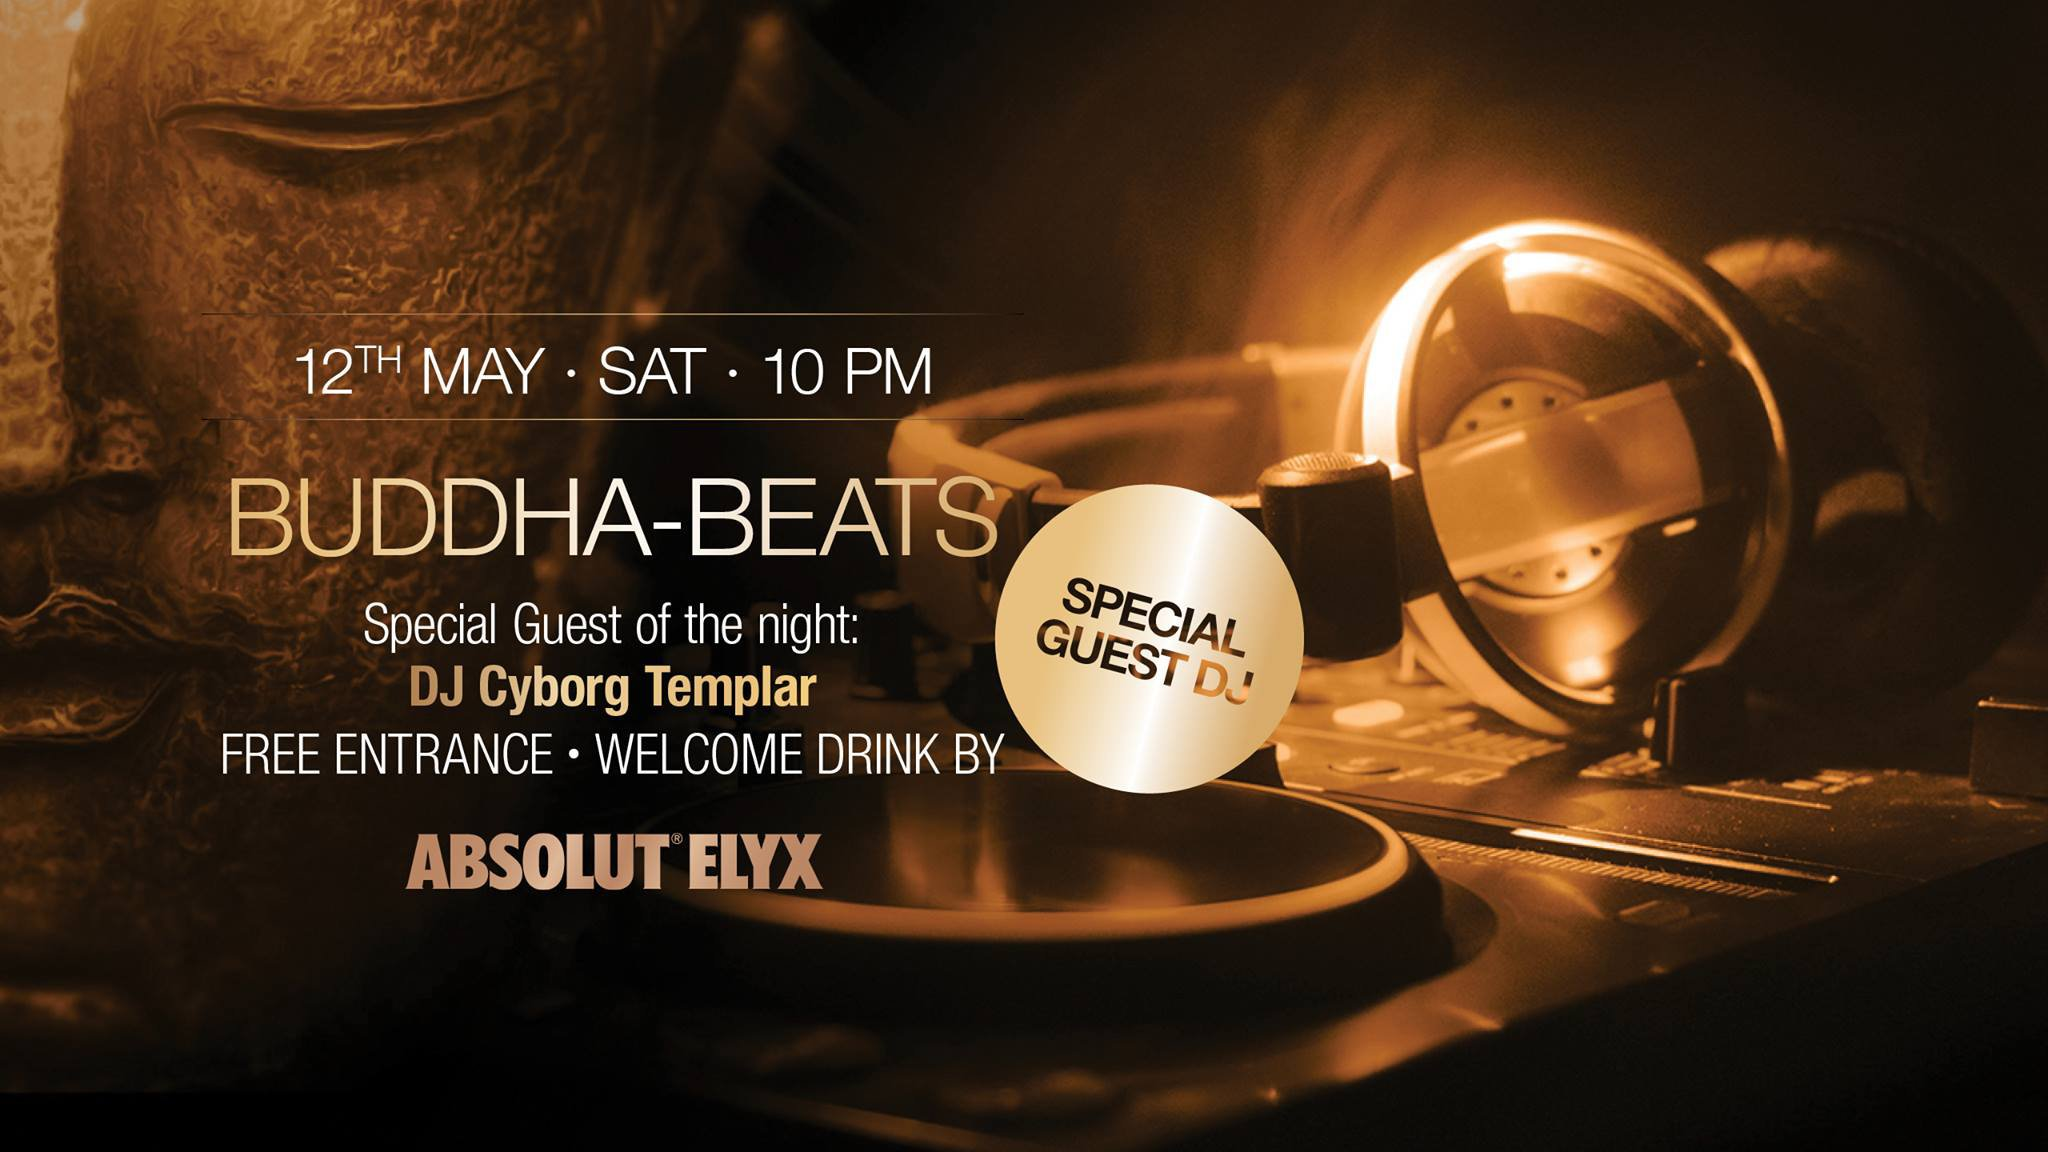 Buddha-Beats With DJ Cyborg Templar, 12 May